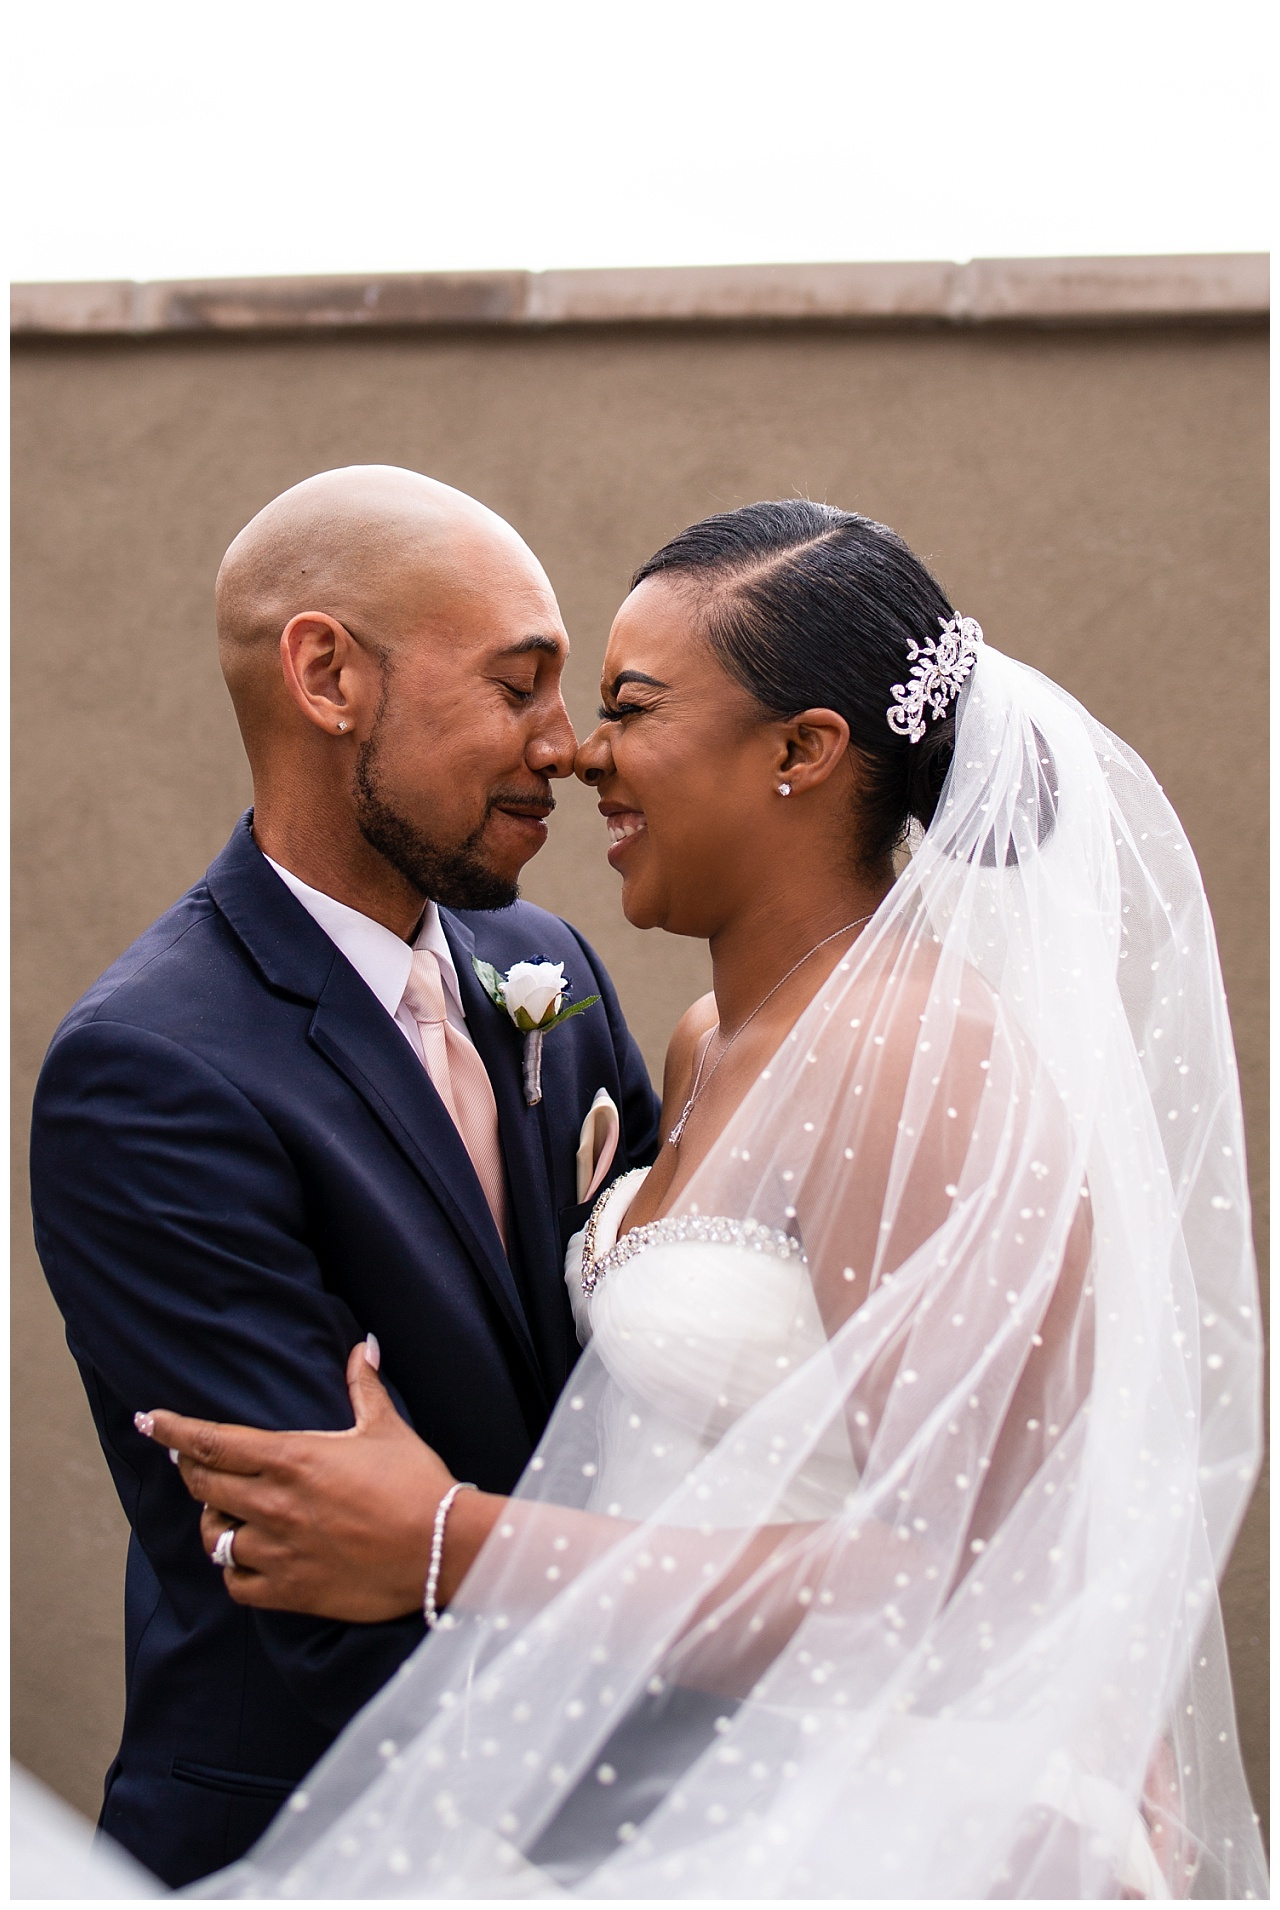 Seriously, obsessed with this veil, dress, everything, her entire look was poppin.